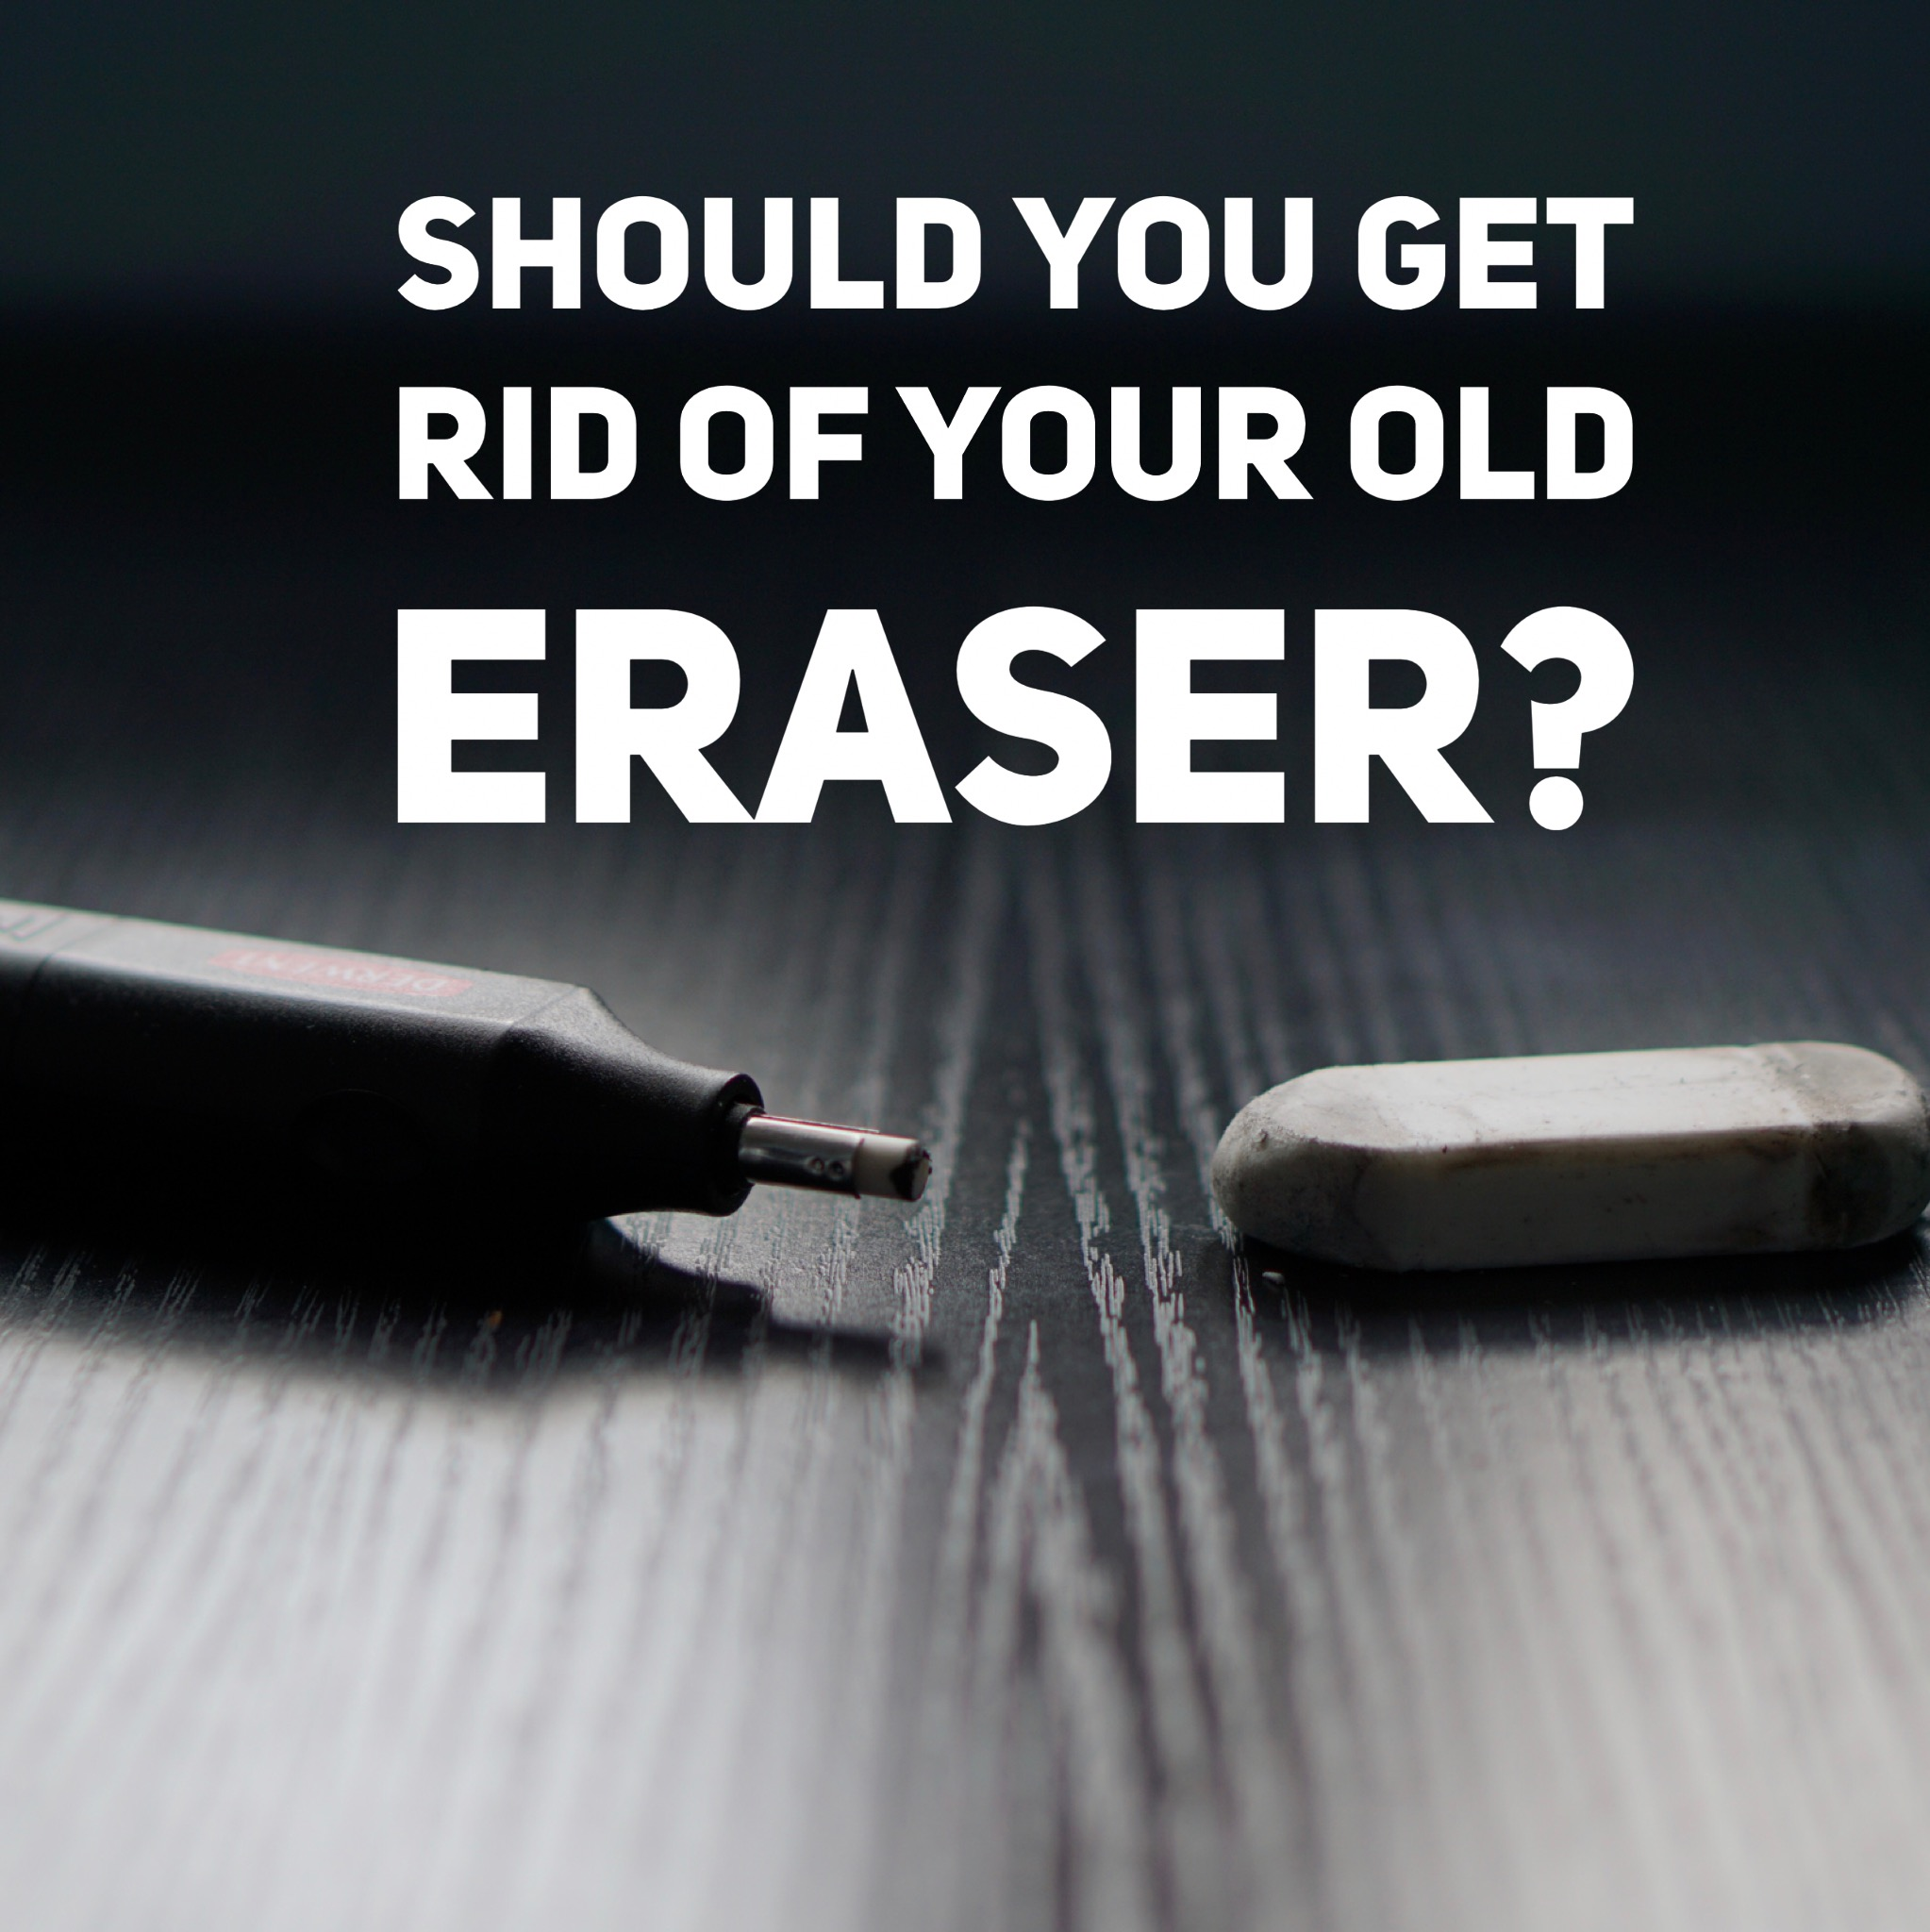 Should you get rid of your old eraser? – Electric eraser Review